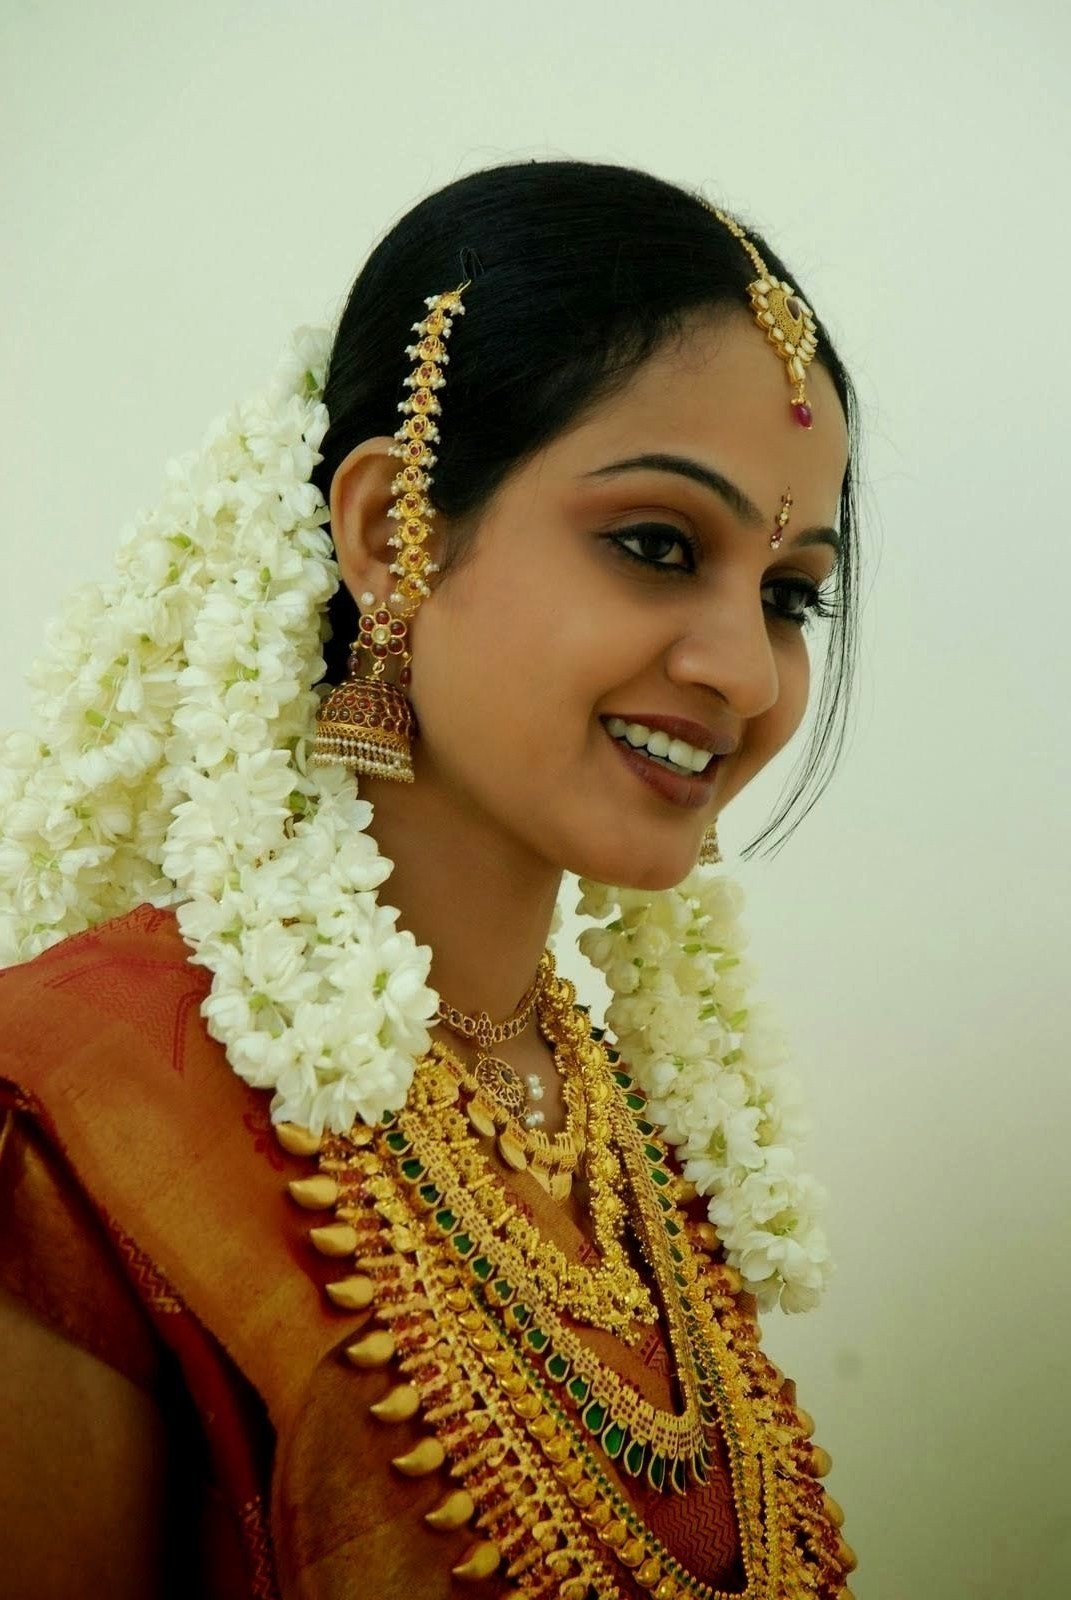 New 15 Inspirations Of South Indian Tamil Bridal Wedding Ideas With Pictures